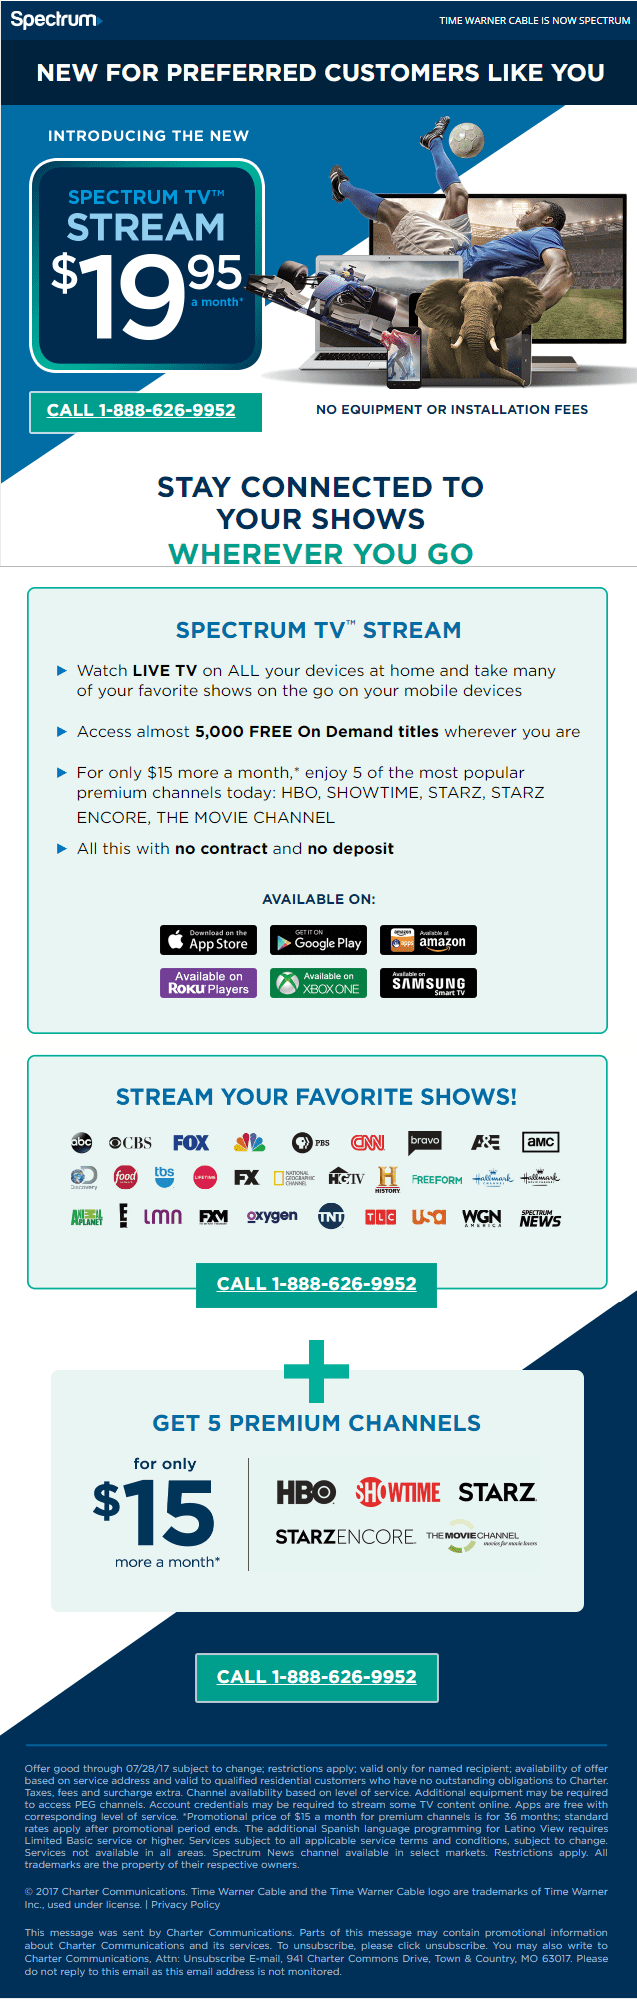 Charter Spectrum Introduces 19 95 Sports Free Online